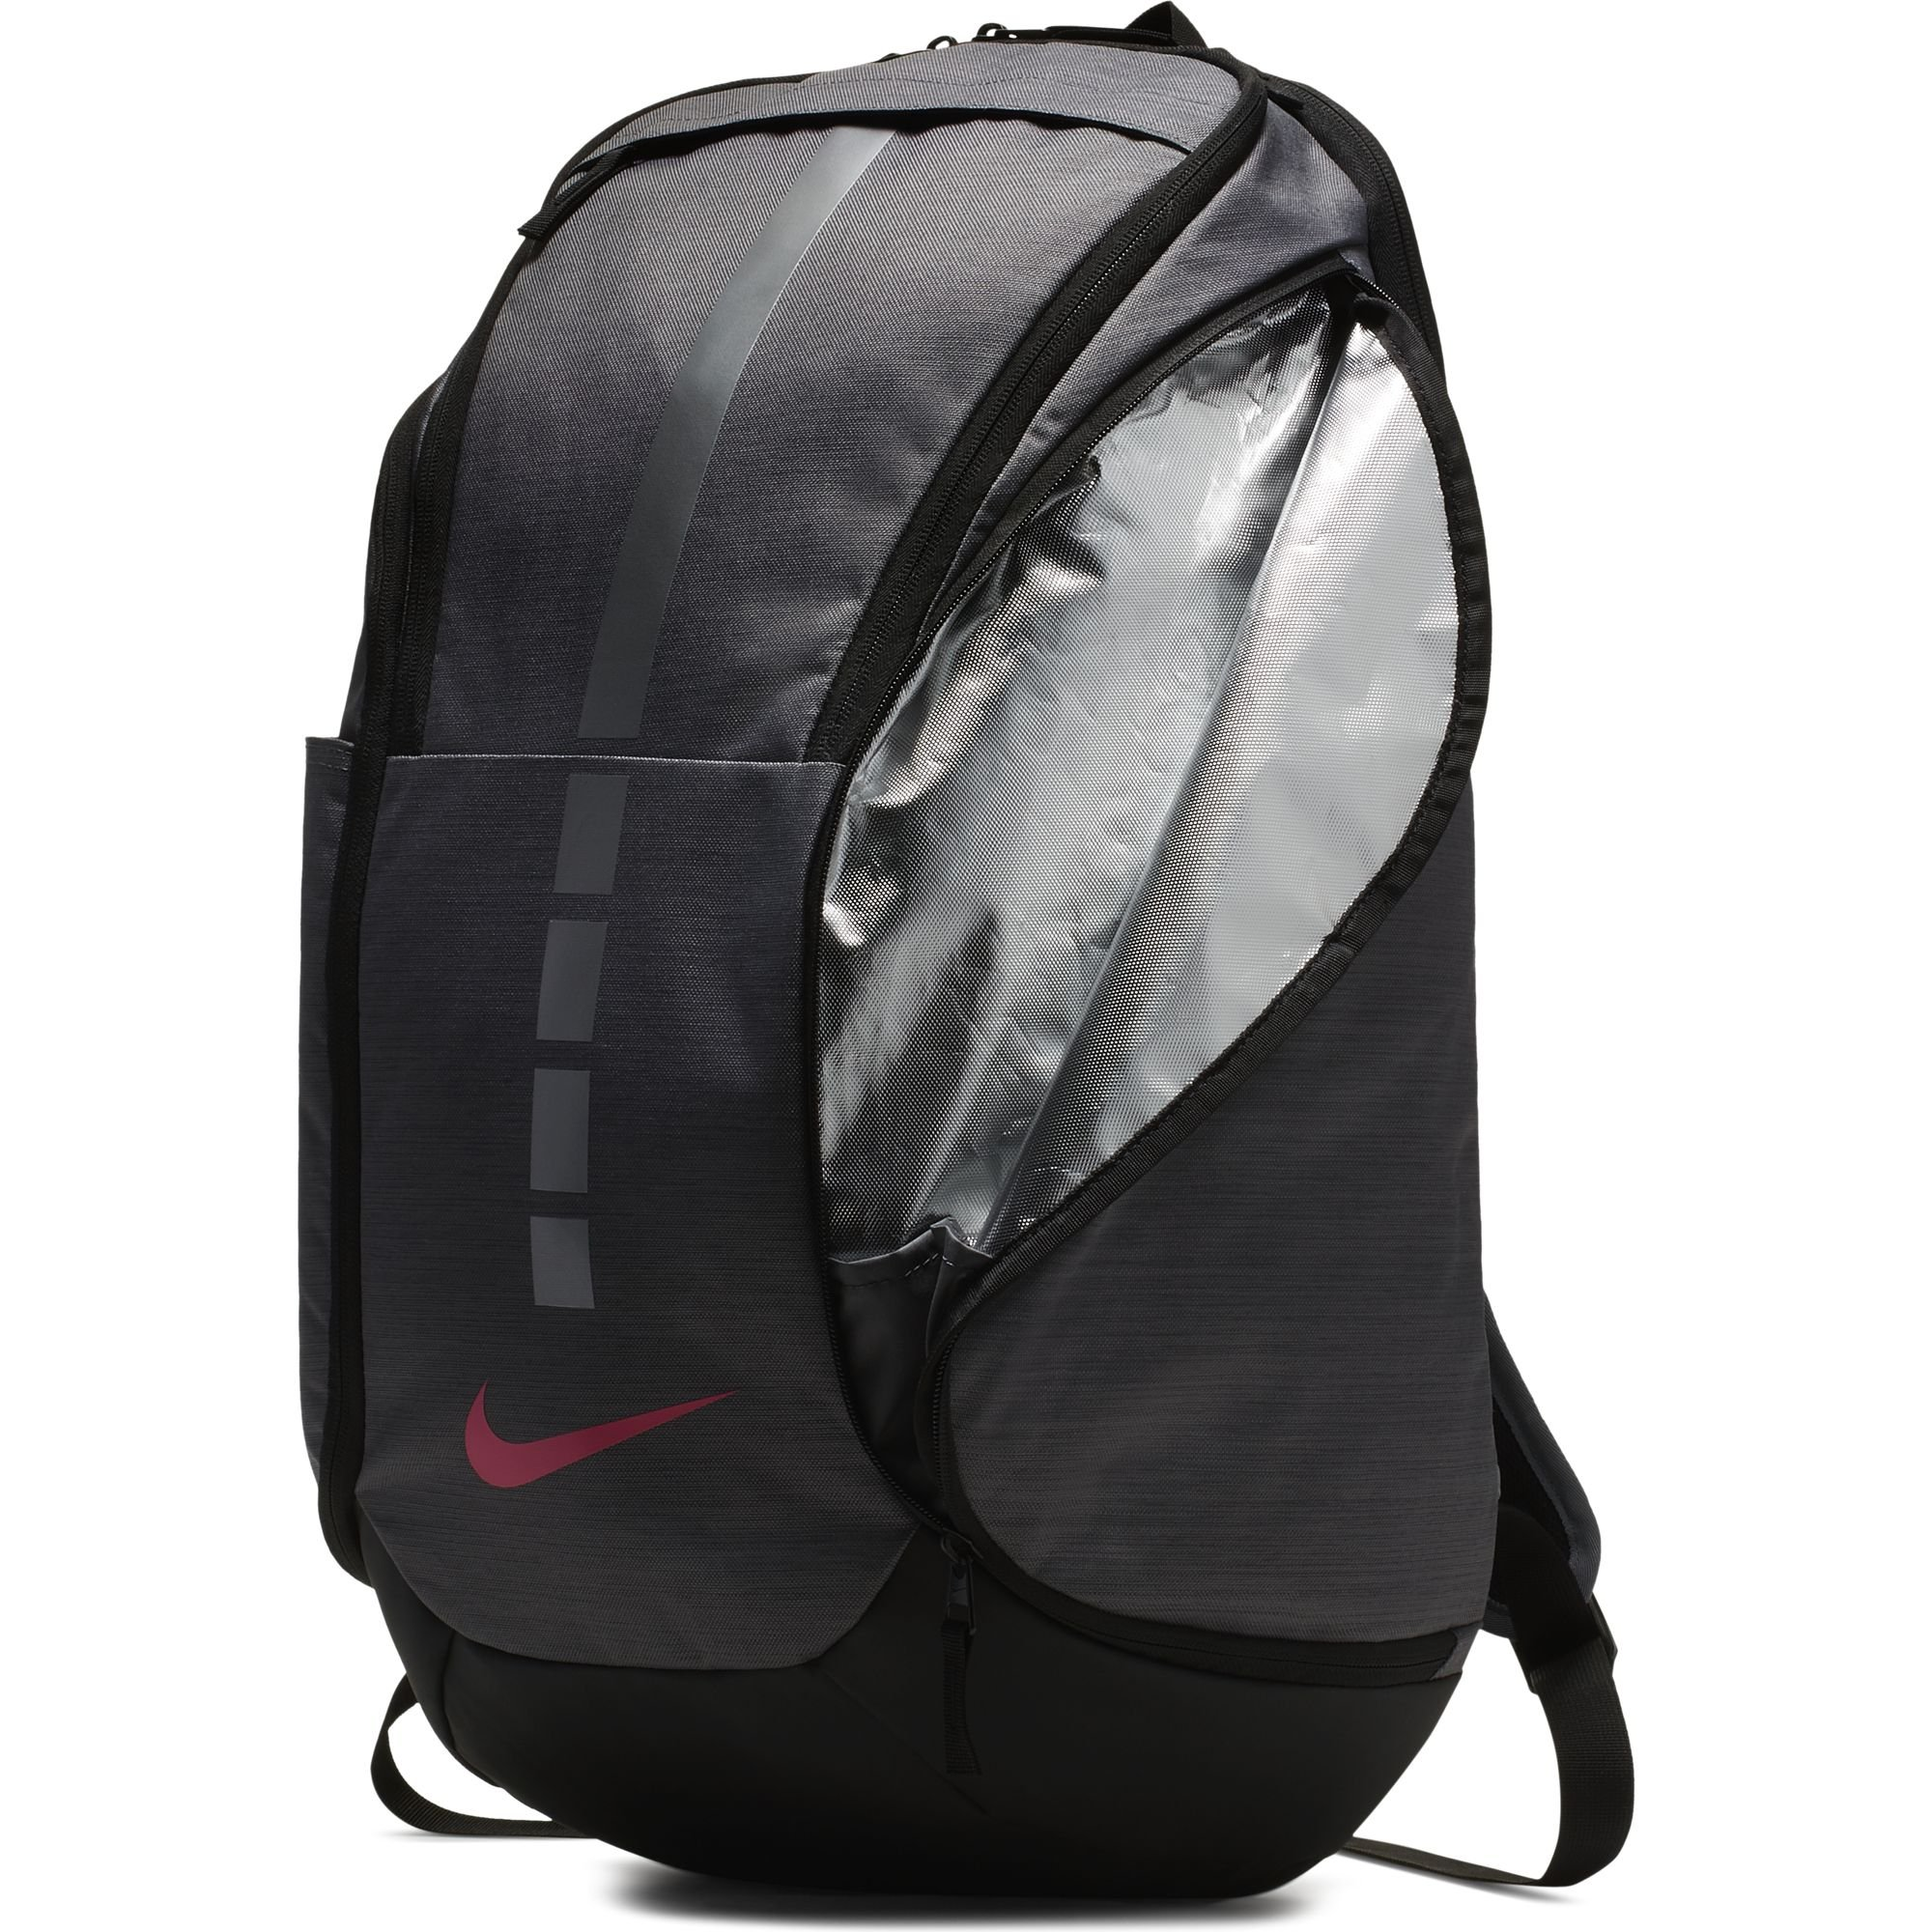 Nike Hoops Elite Pro Basketball Backpack - Lifestyle Updated 43dded49d1db0